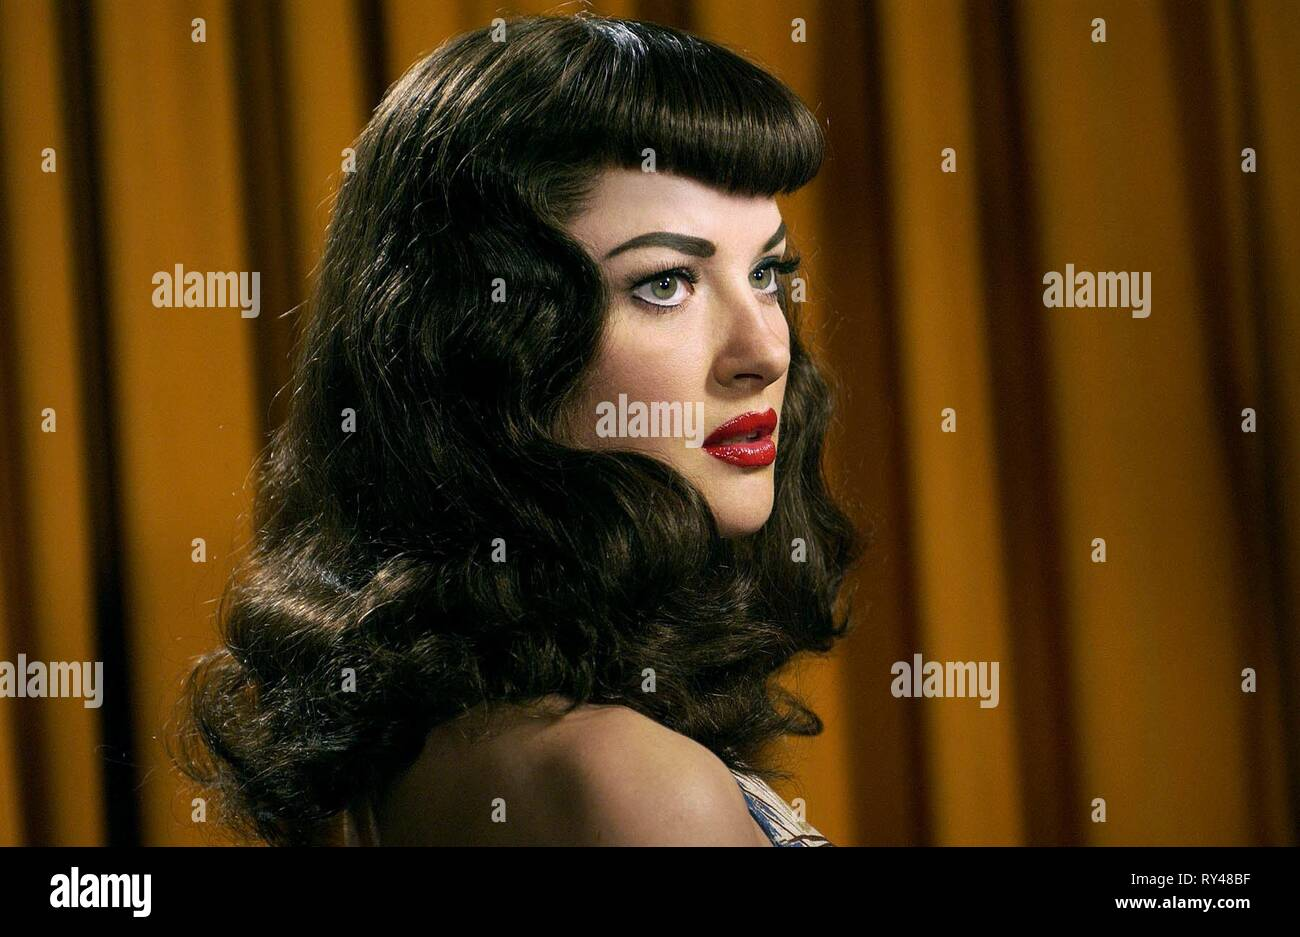 GRETCHEN MOL, THE NOTORIOUS BETTIE PAGE, 2005 Stock Photo